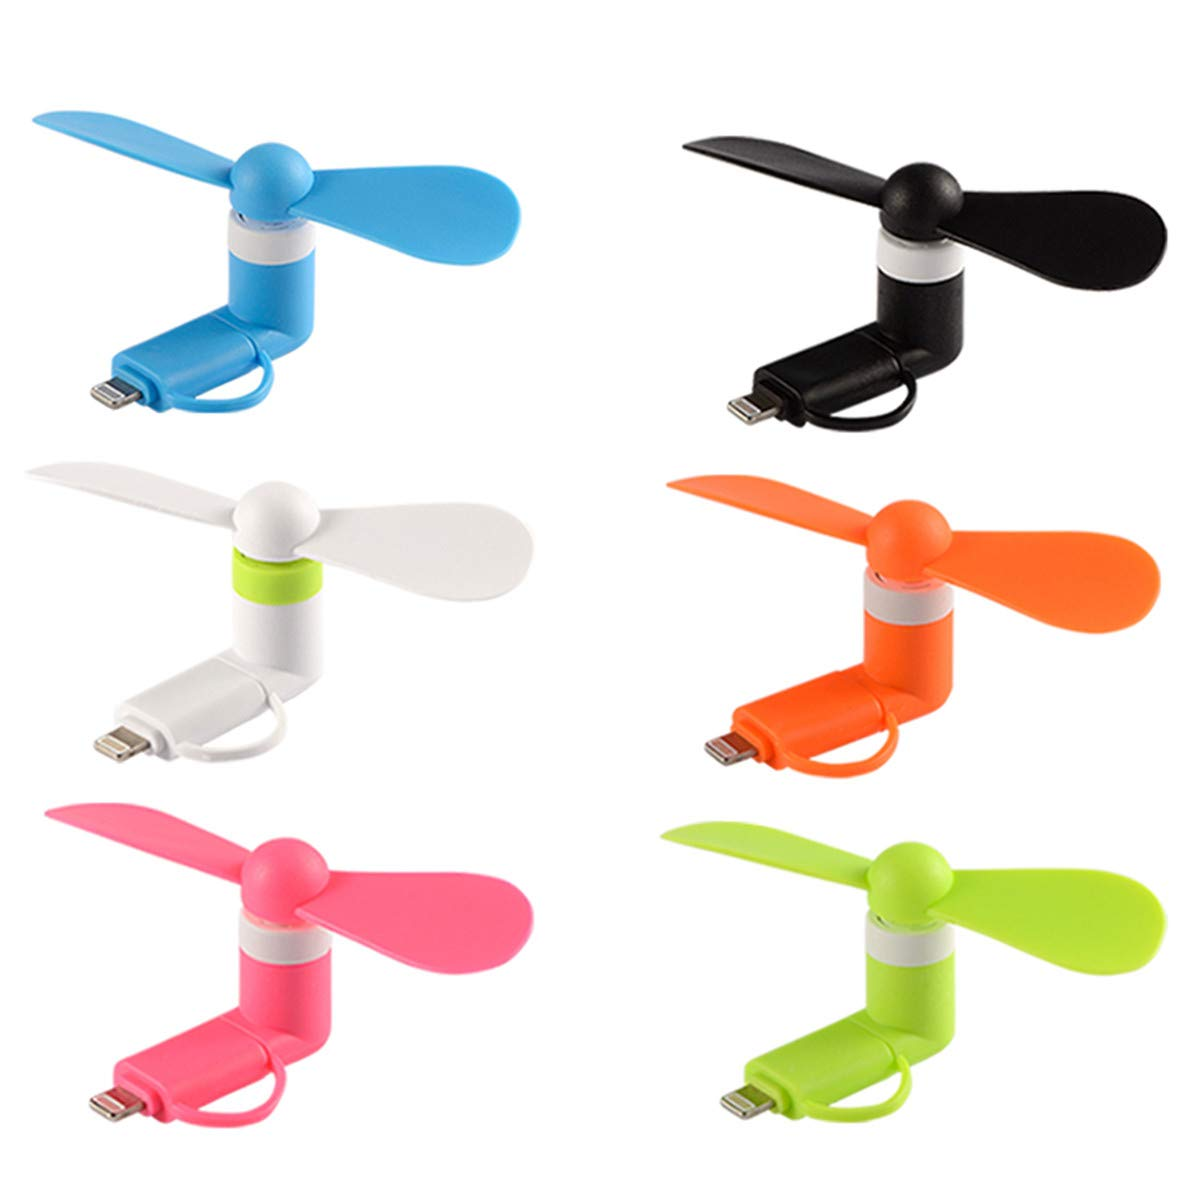 Mini Cell Phone Fan - Colorful and Powerful 2-in-1 Fan for iPhone/iPad/Android Smartphone/Tablet - Cell Phone Summer Accessories - (6-Pack) by Xindejia